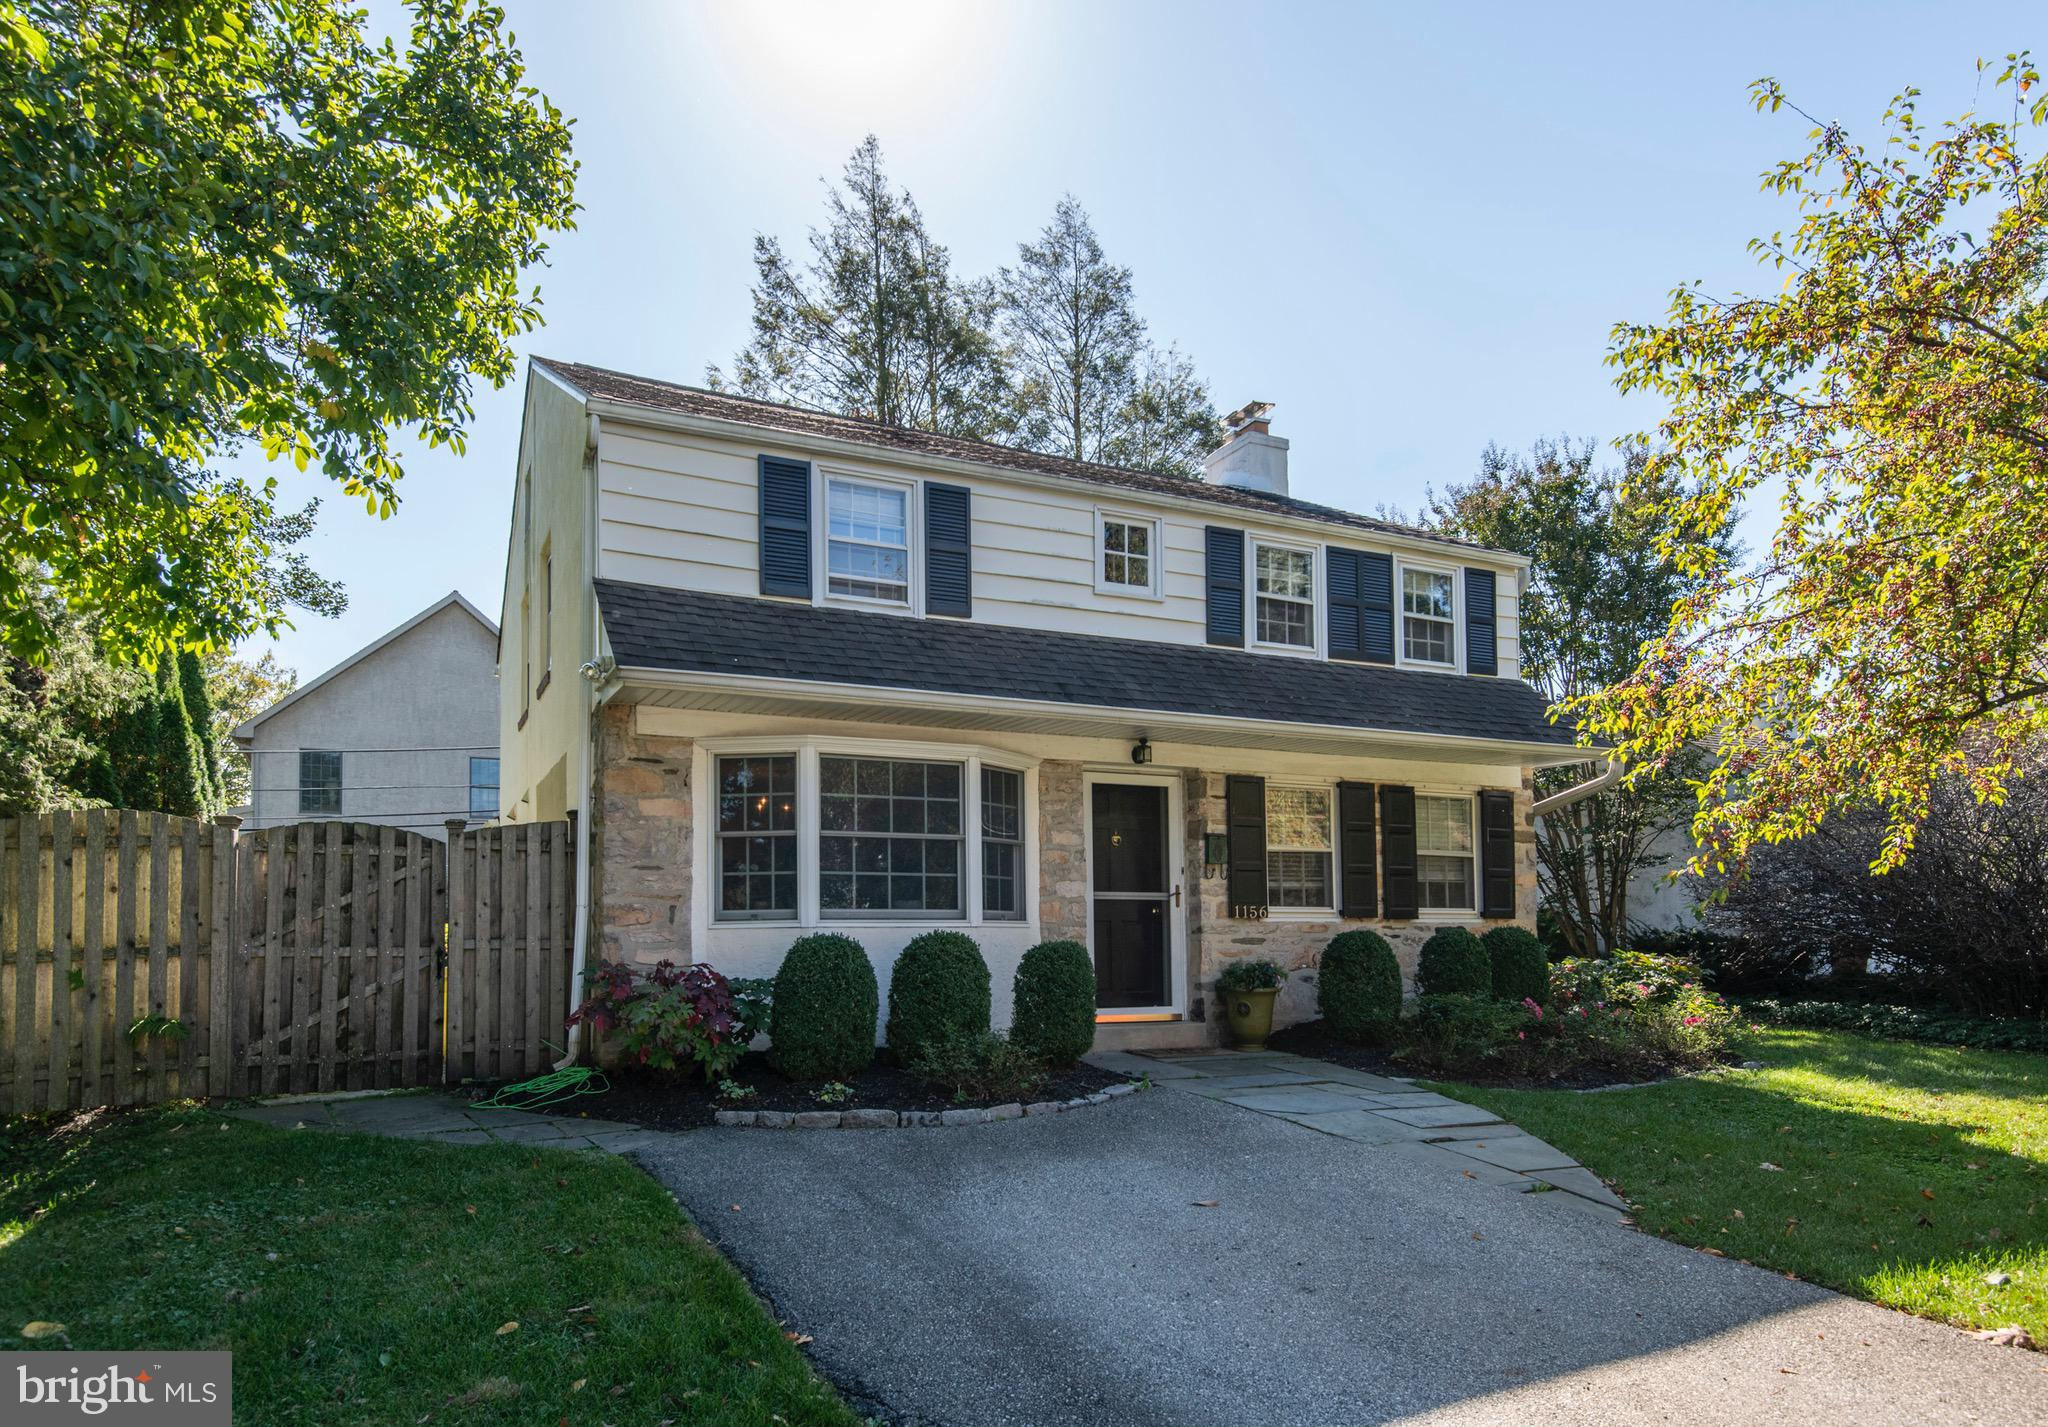 All showings start at the open house on Sunday, Oct 24.  Be sure to watch the full motion video tour. Wonderful, classic colonial in a location hard to match!  Fall in love with fantastic curb appeal and inviting front yard  that leads into this 3 bedroom, 2.5 bathroom home on Maplecrest circle - one of Gladwyne's most sough-after streets/neighborhoods. The first floor of this expanded home has a great circular flow to it. A cozy living room with wood burning fireplace on one side and formal dining room on another, open to a kitchen and recreation/playroom with access to a beautiful flat backyard. Conveniently located powder room and laundry are completing the first floor.  The second floor features primary bedroom with full bath and two bedrooms with hallway bathroom and additional office/bonus room. Hardwood floors through first and second floors, extra space for storage in the basement.  Beautifully maintained, fenced backyard with mature perimeter landscaping, garden and  flagstone patio is perfect for entertaining. Walk to Gladwyne Village, Gladwyne elementary in the Award Winning Lower Merion School District, park and library, or simply pick up the Bridlewild walking/hiking trails right on Maplecrest. Minutes to train station and Center City Philadelphia.  Incredible place, filled with love and light to call home!